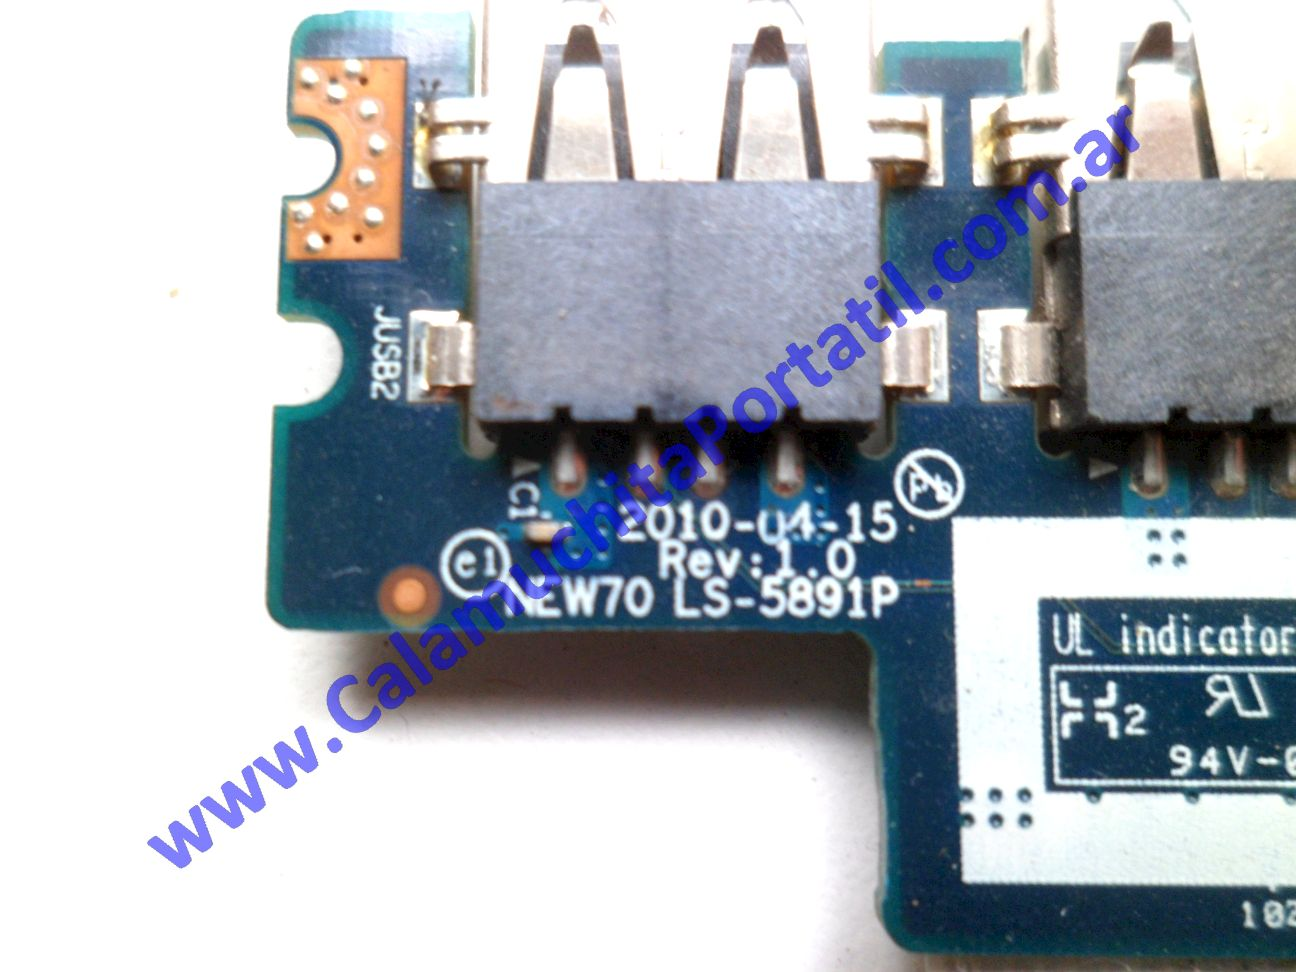 0528PUS Placa USB Acer Aspire 5251-1779 / NEW75